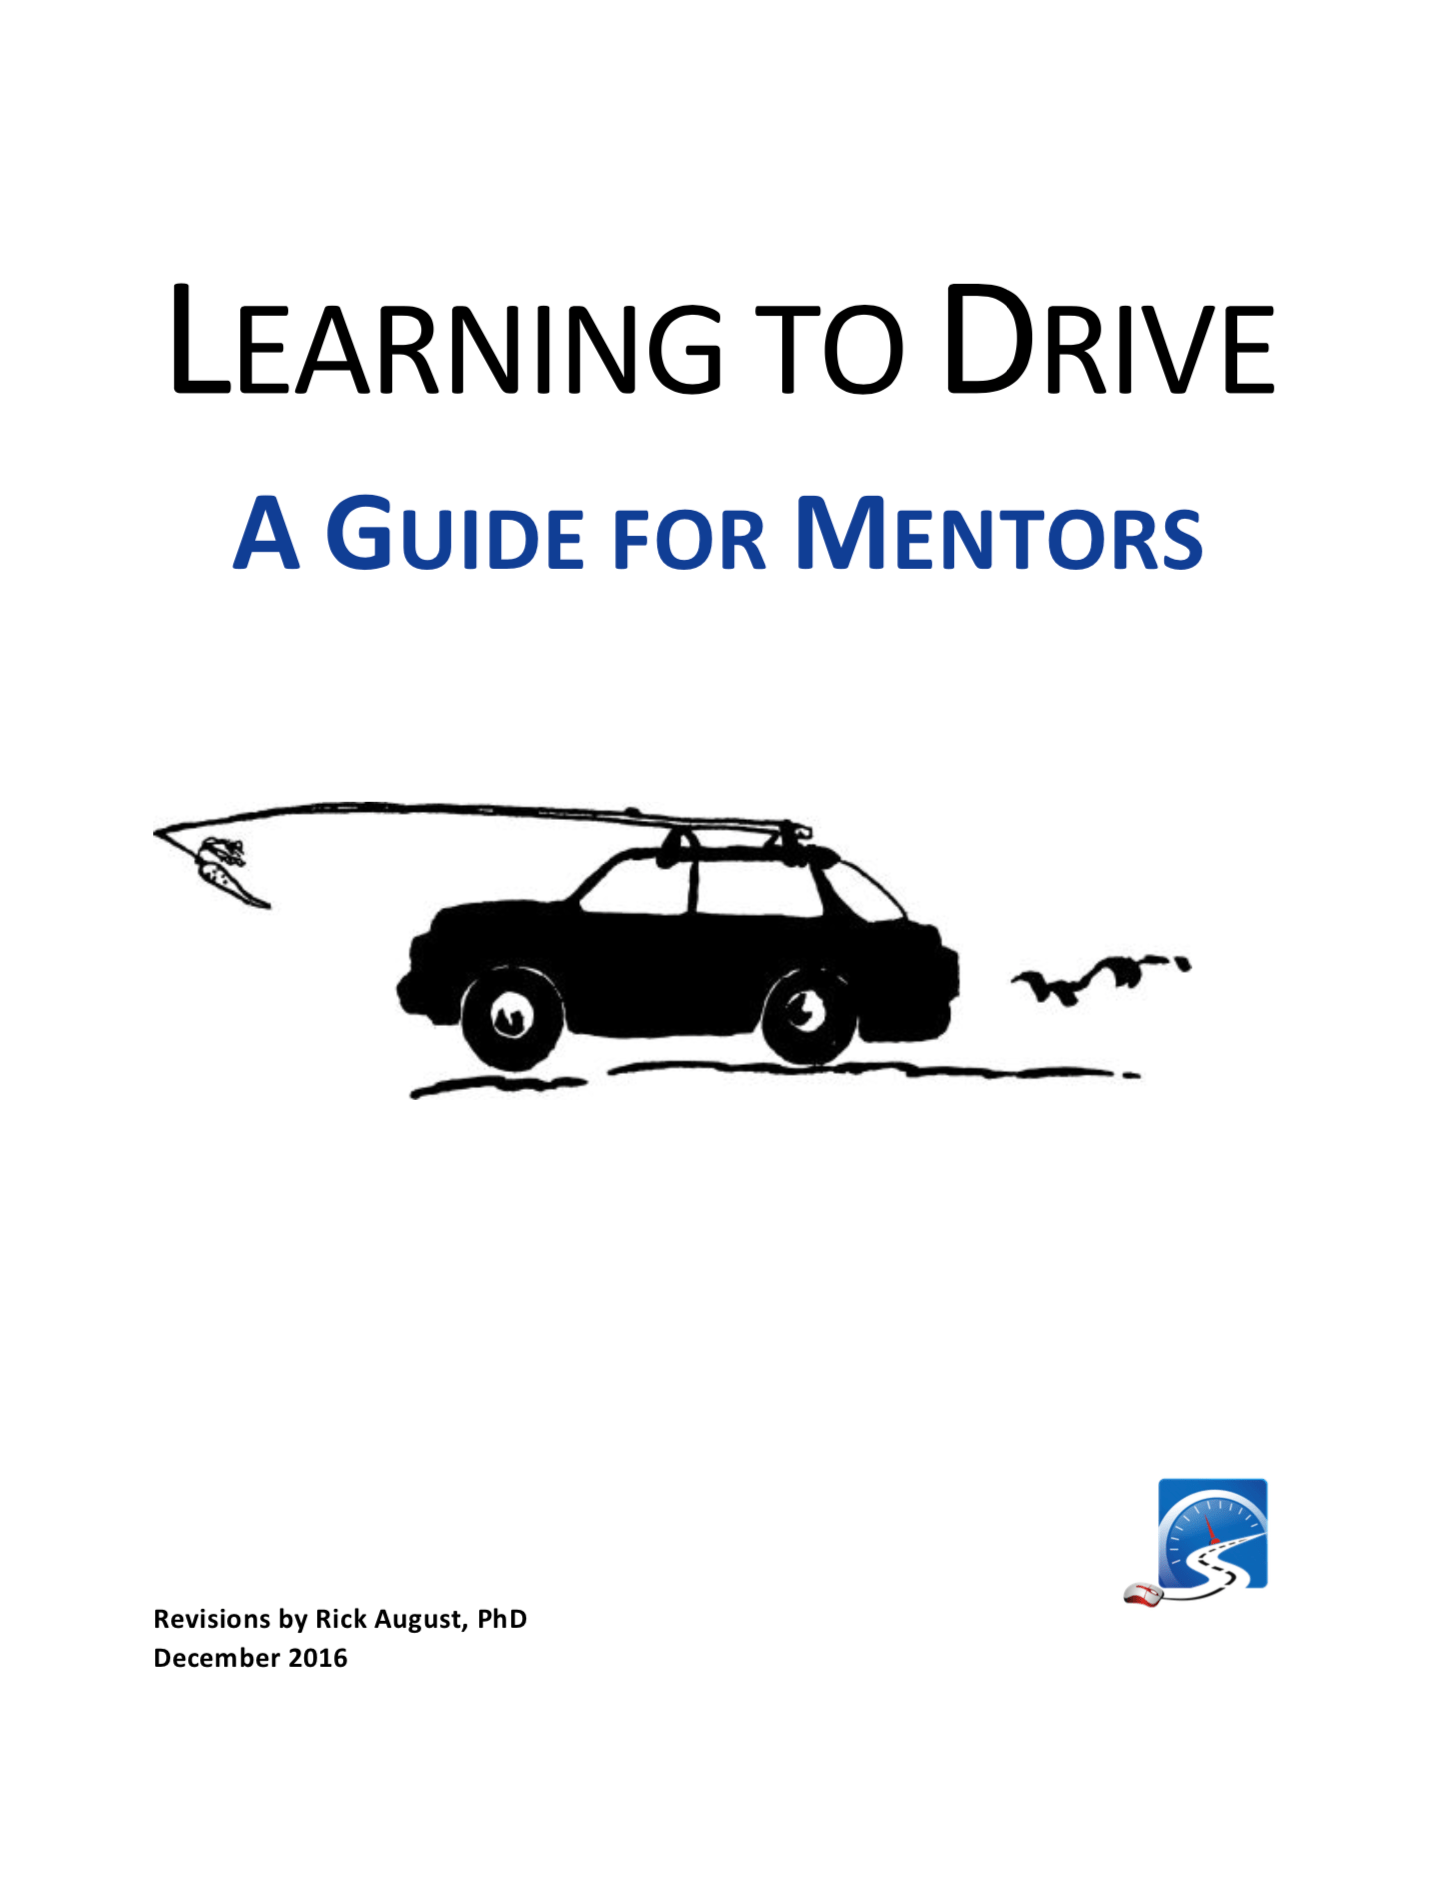 This free guide give helpful tips and strategies for mentors helping new drivers learn to drive.